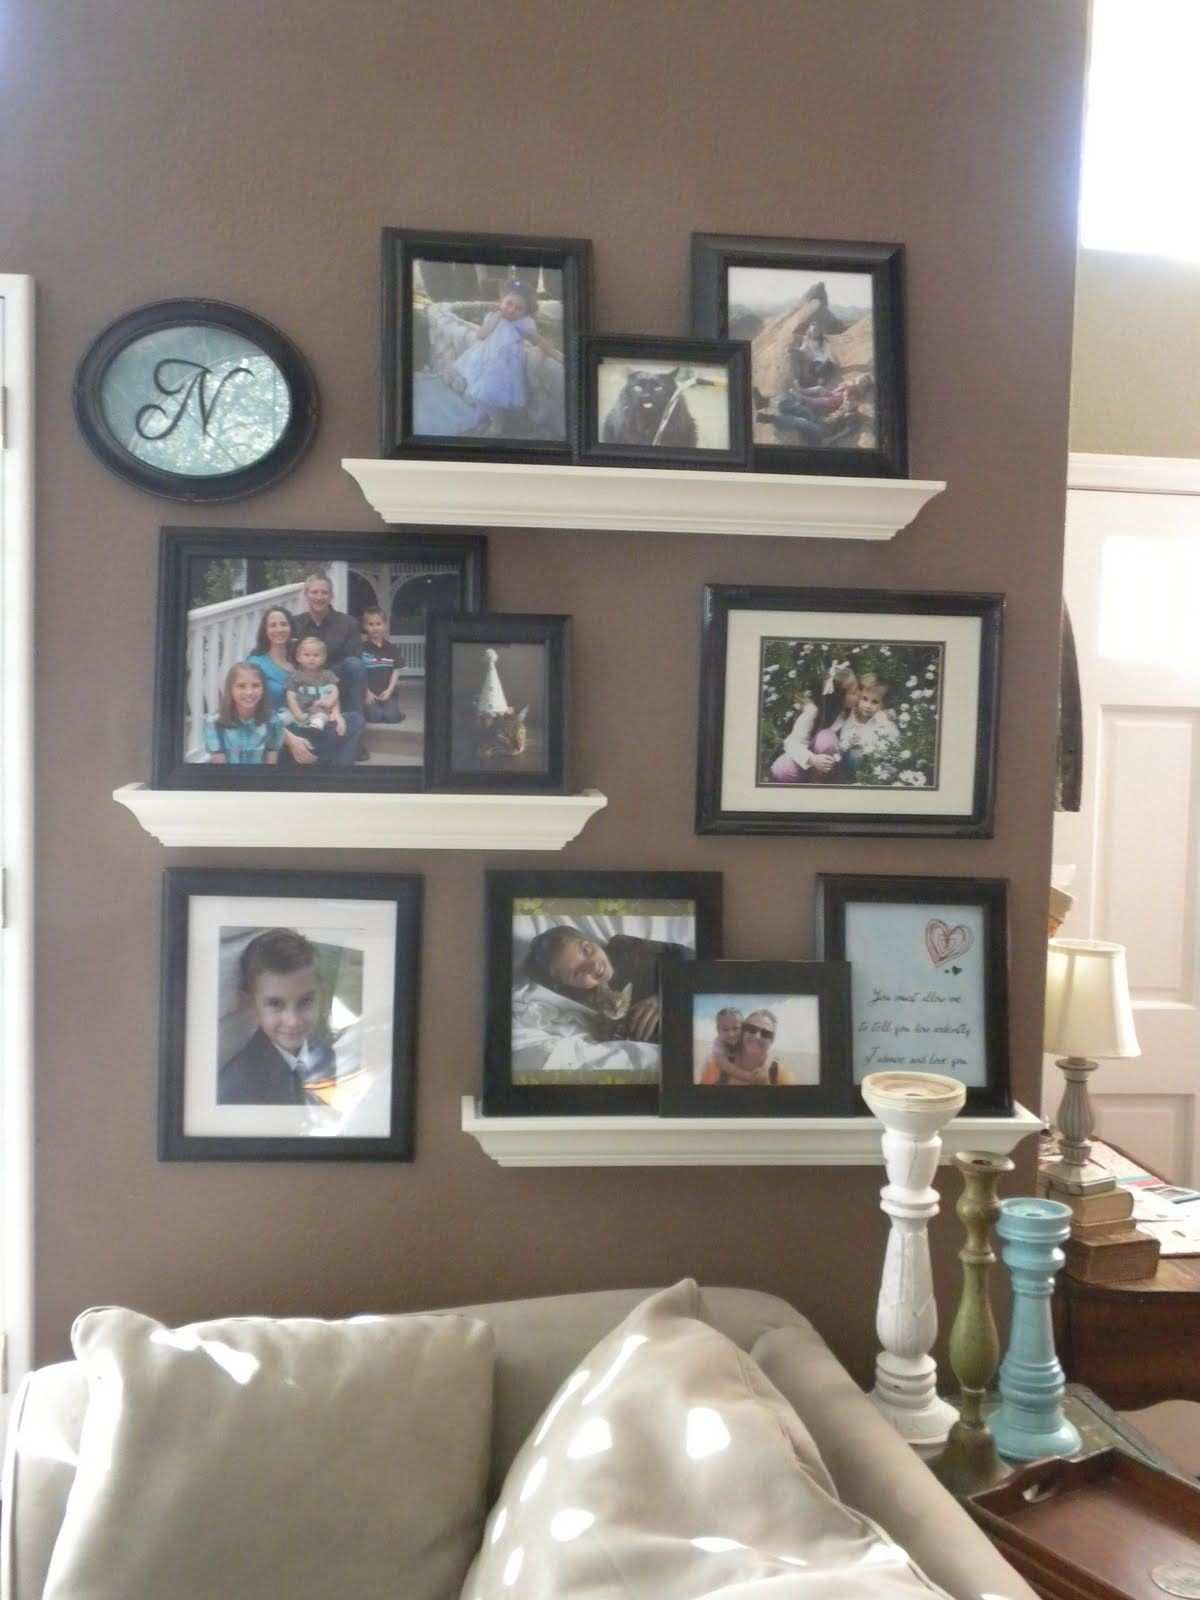 Free Download Image Luxury Wall Shelf For Picture Frames 650867